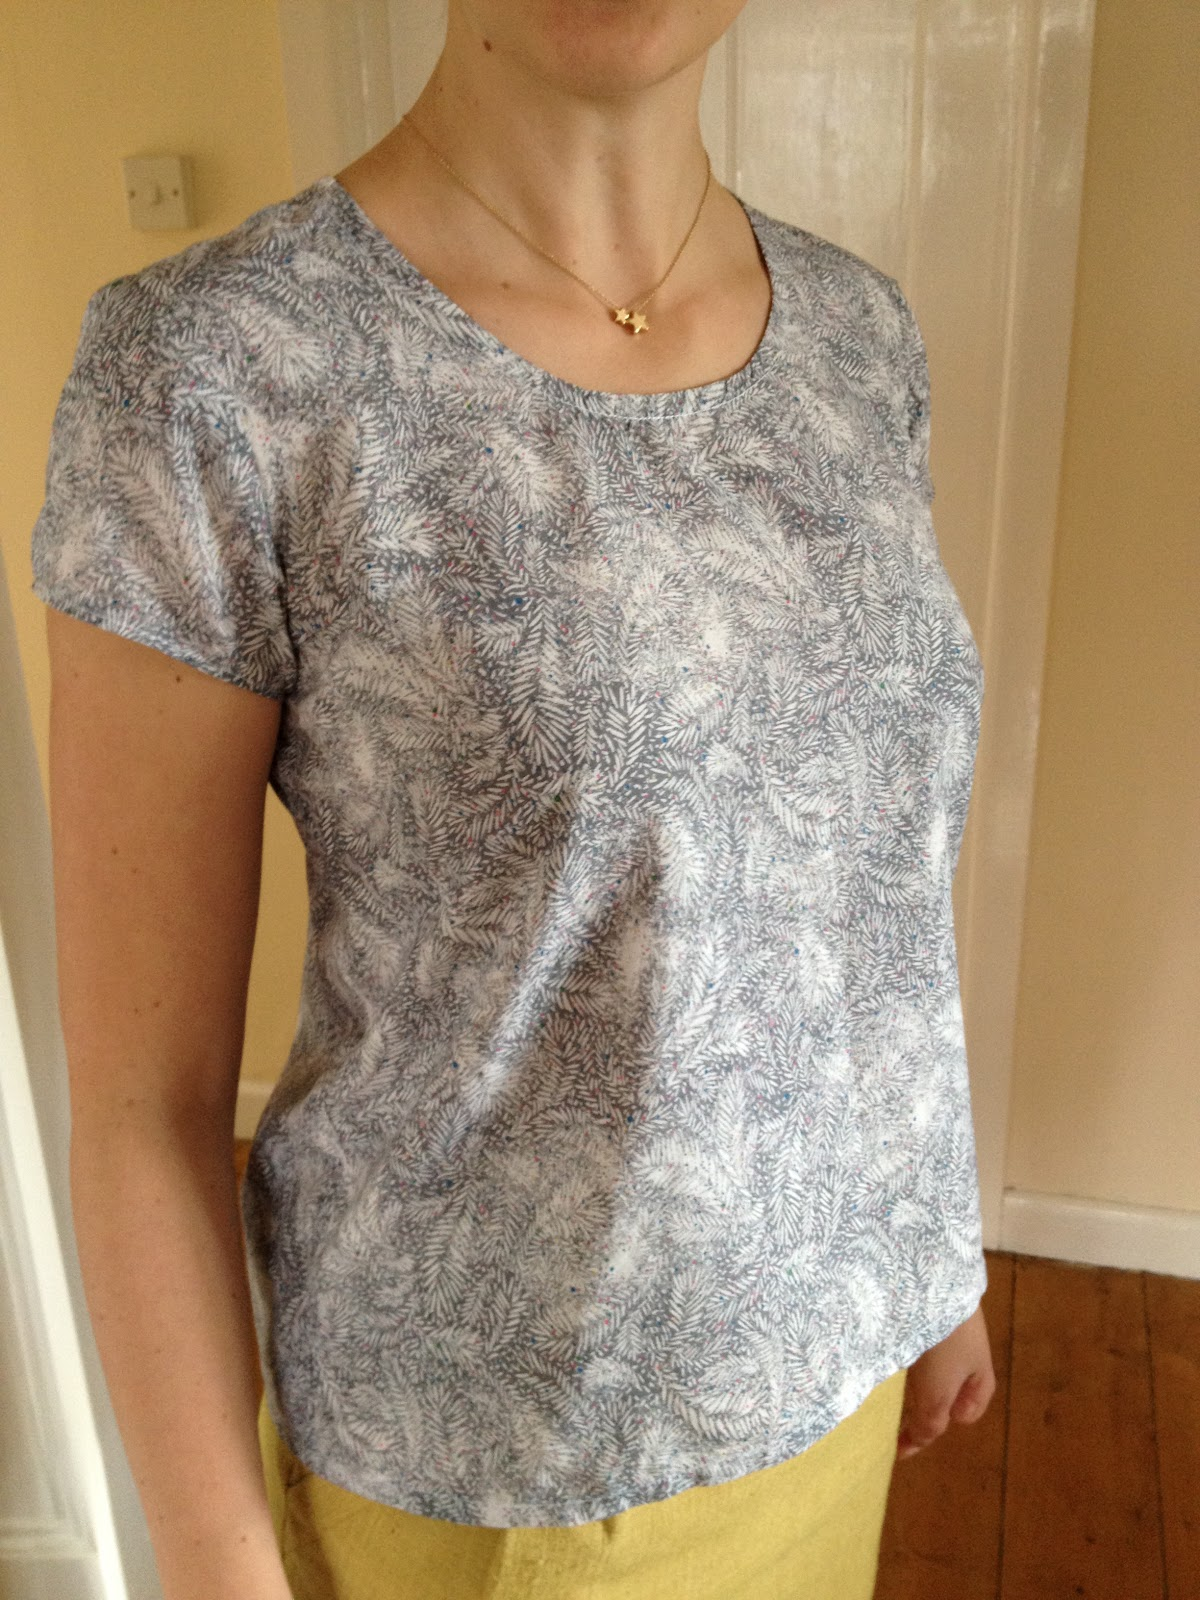 Diary of a Chain Stitcher : Finished Project - Grainline